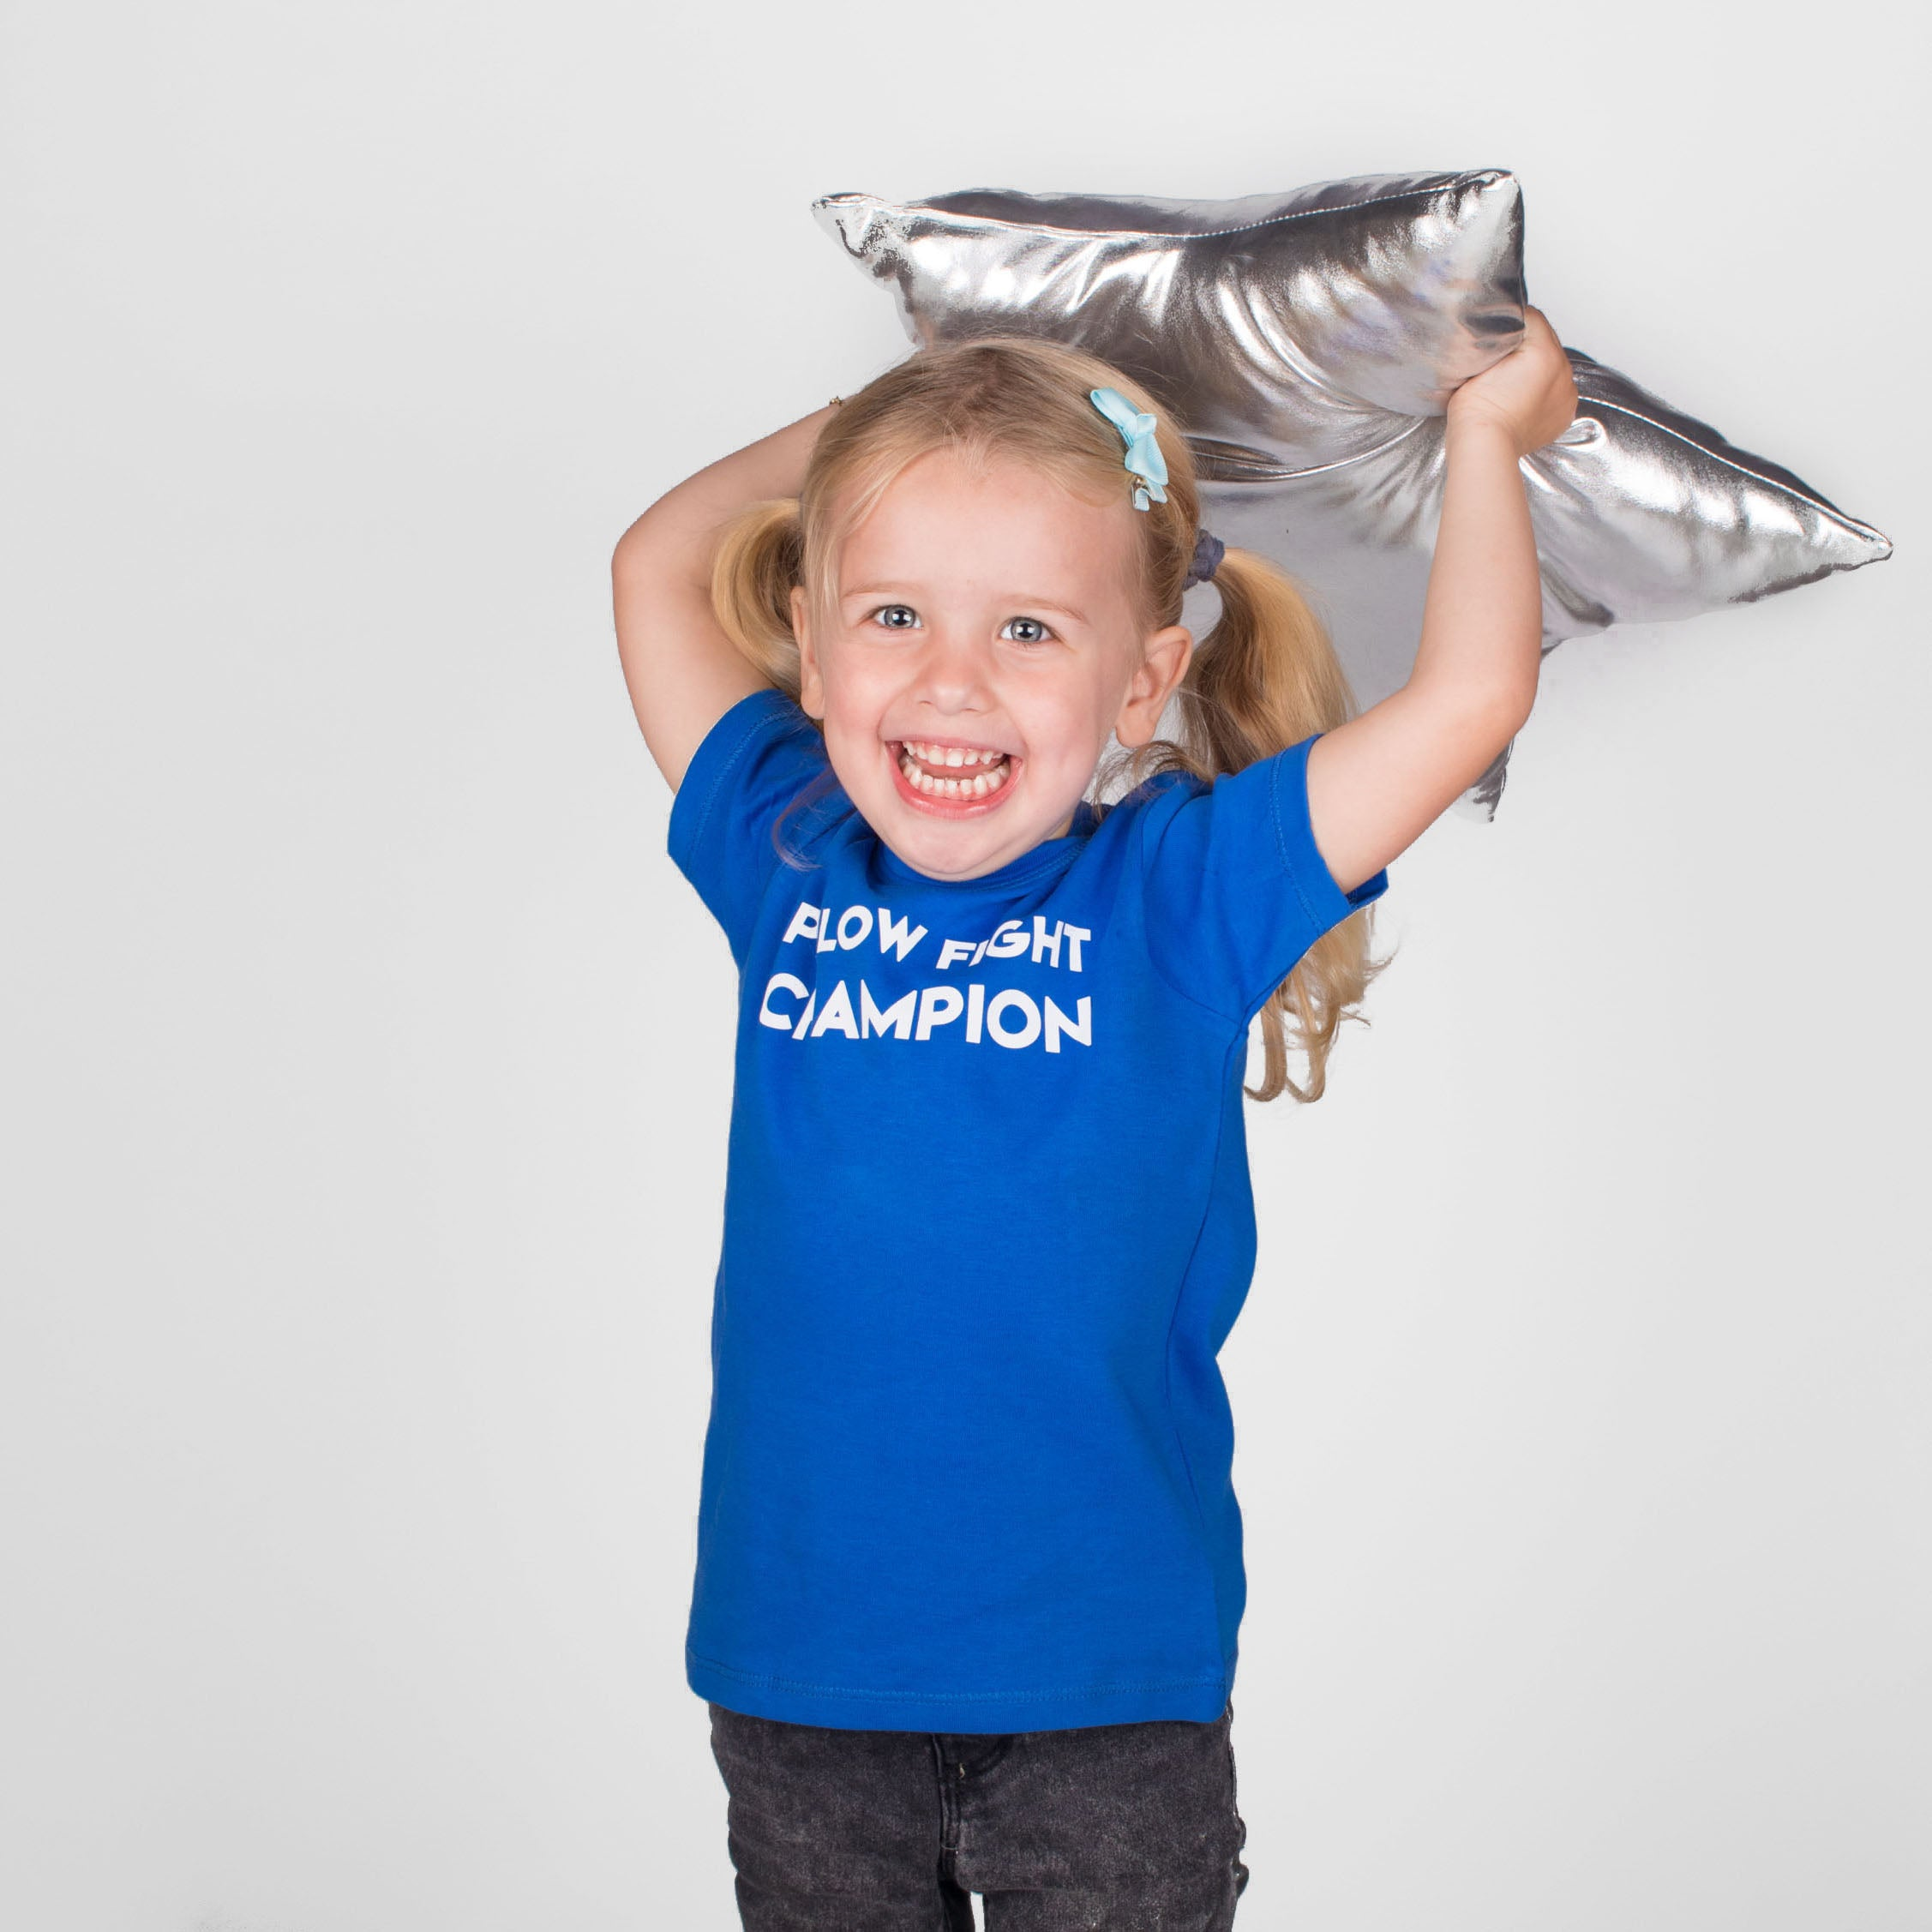 'Pillow fight champion' baby shortsleeve shirt